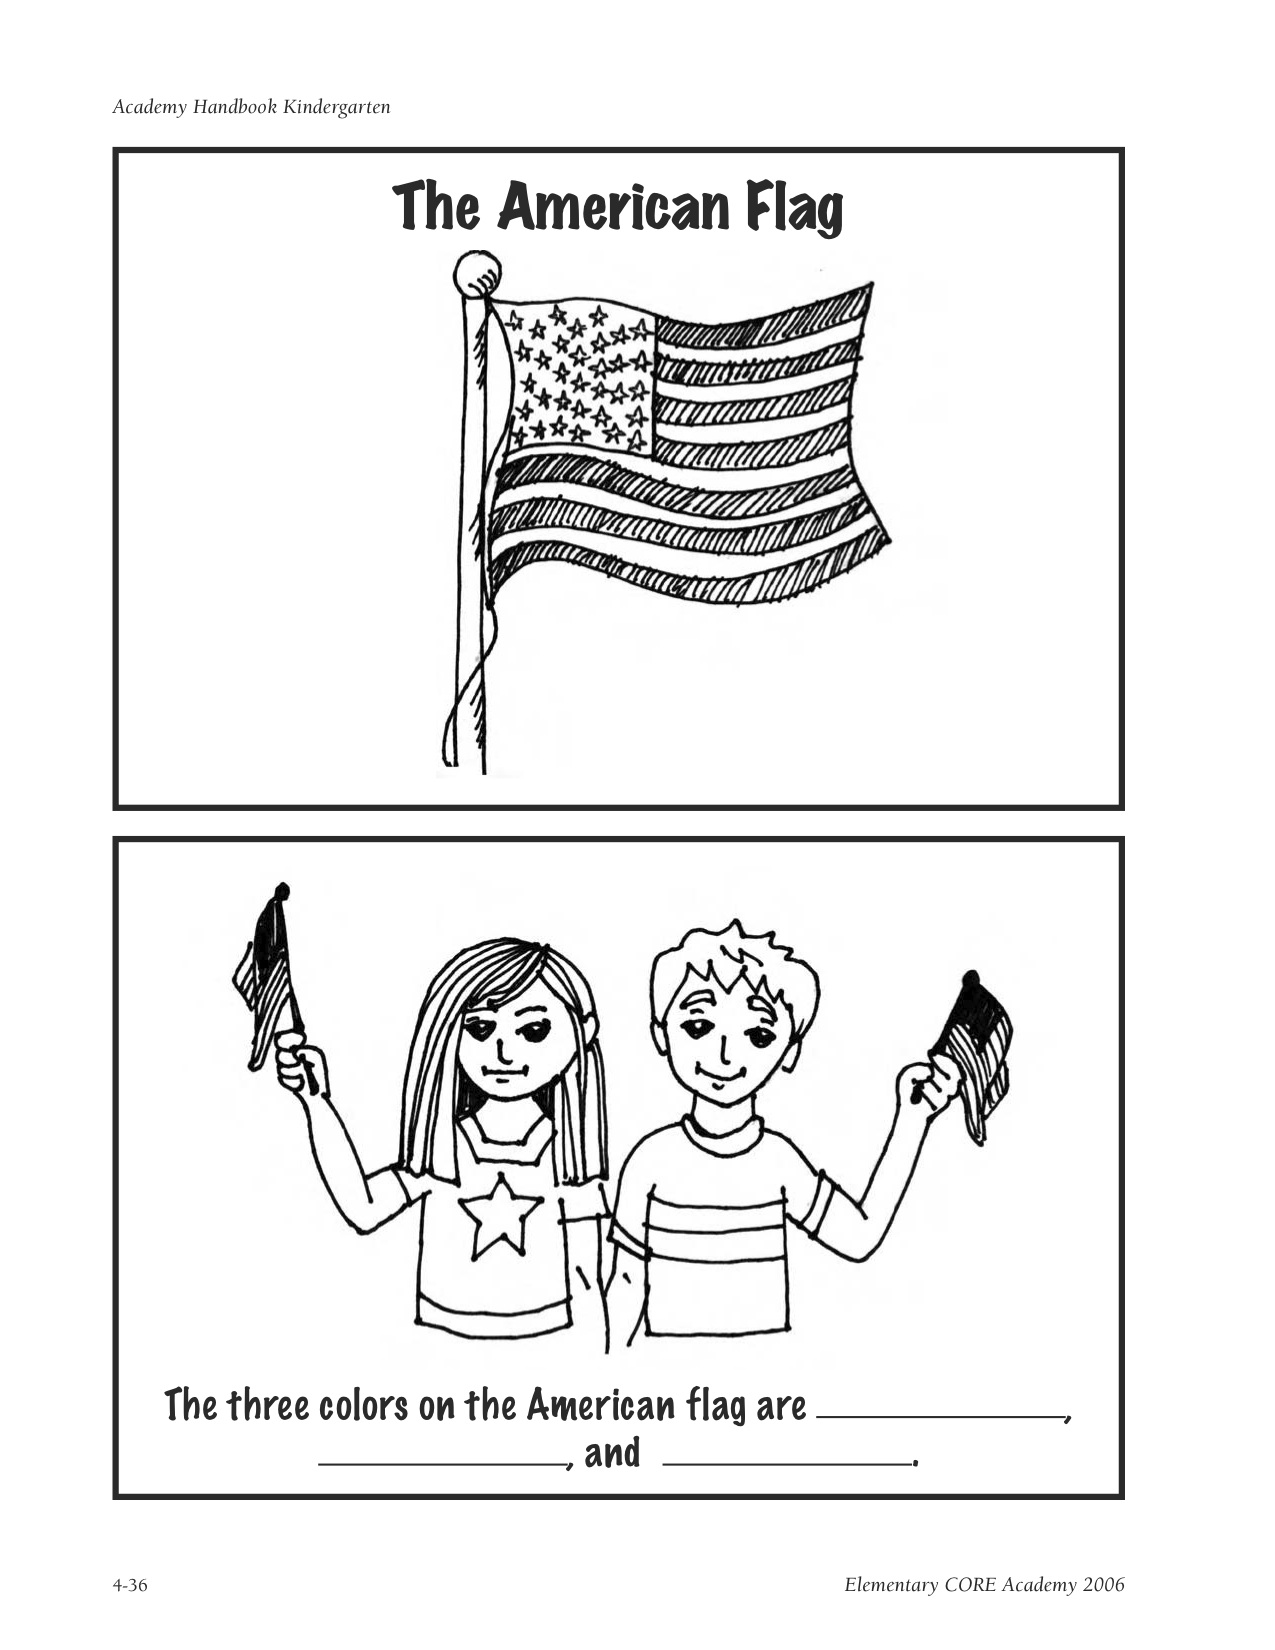 The pledge of allegiance kindergarten nana for American flag coloring page for first grade